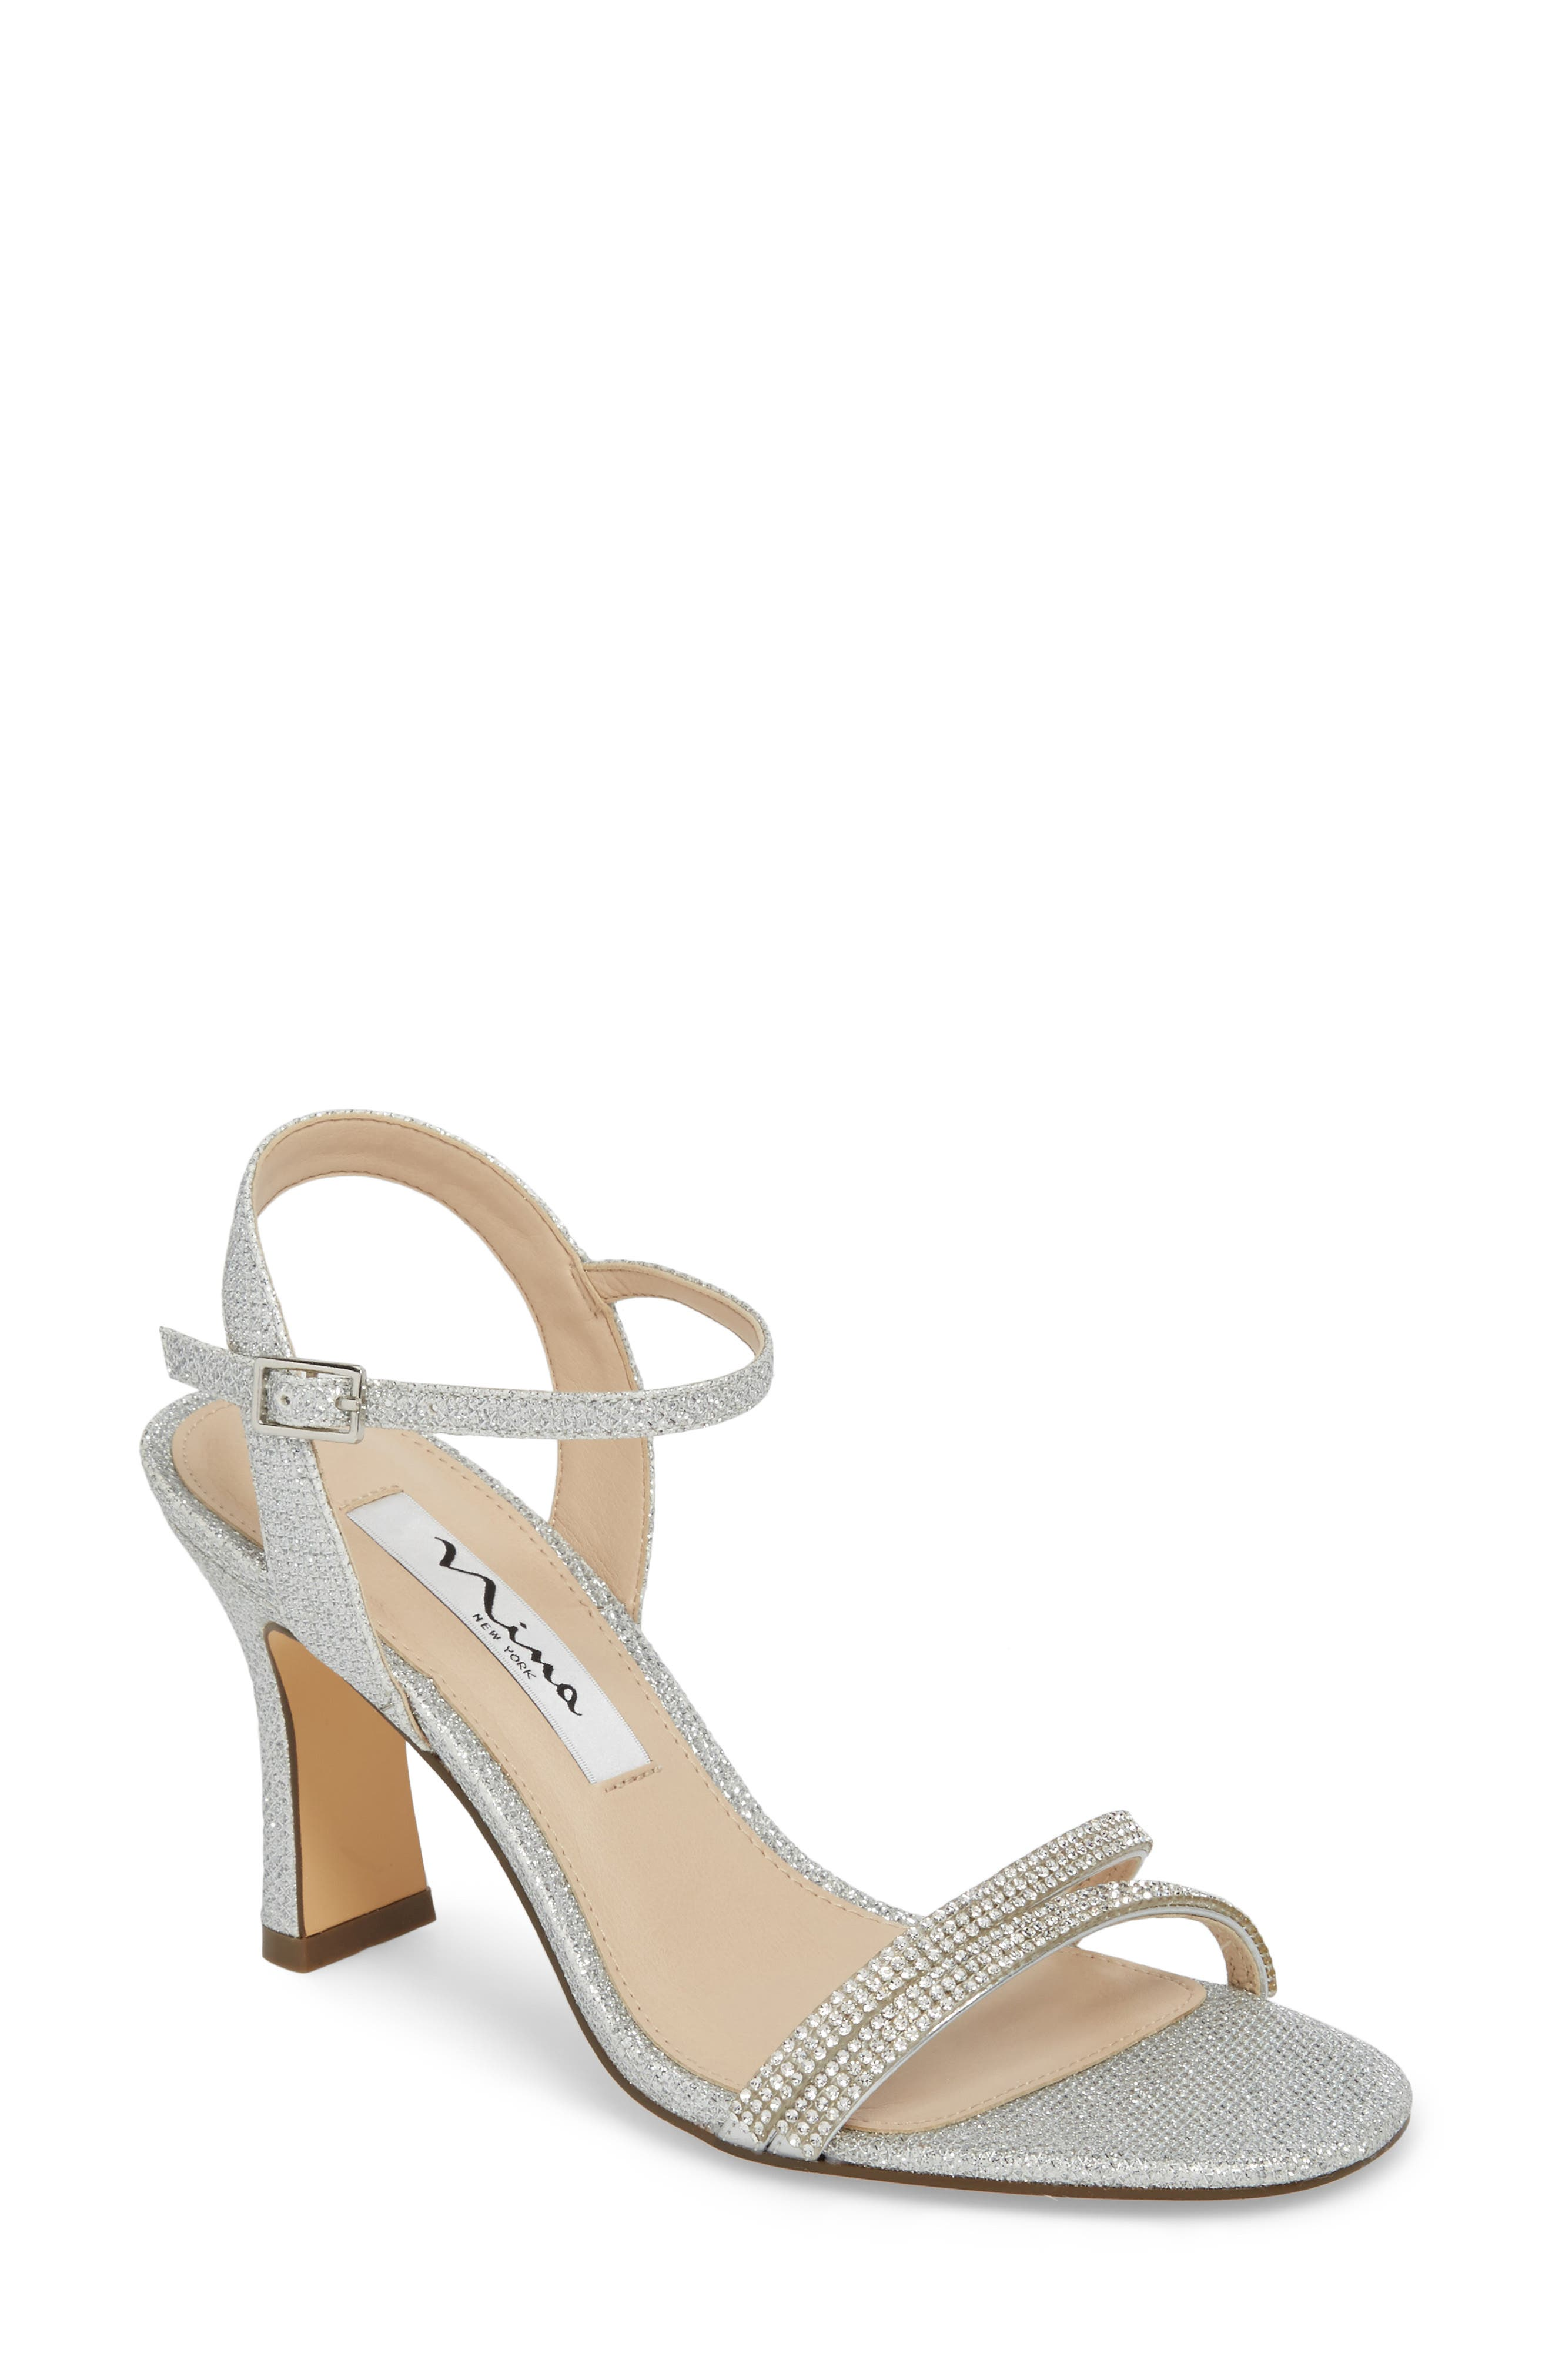 Avalon Ankle Strap Sandal,                             Main thumbnail 2, color,